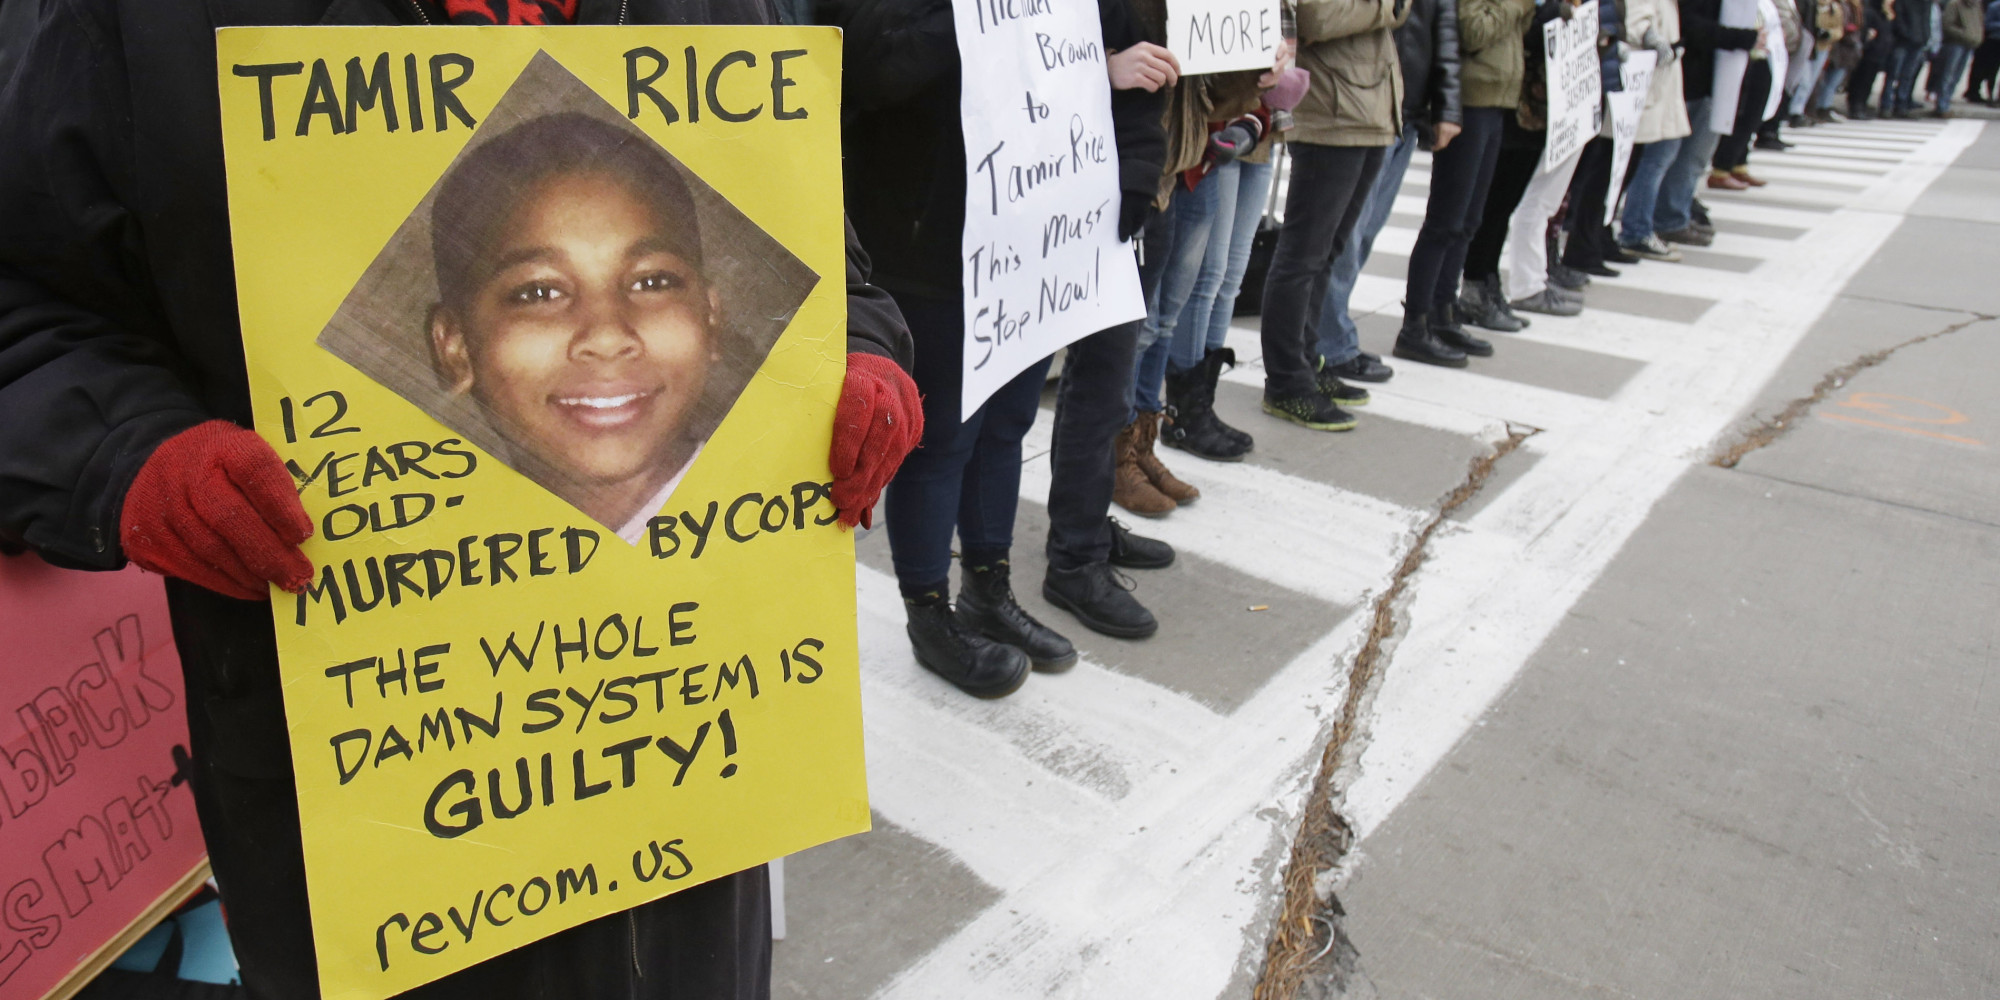 Police Gunned Down A 12-Year-Old And Somehow Local News